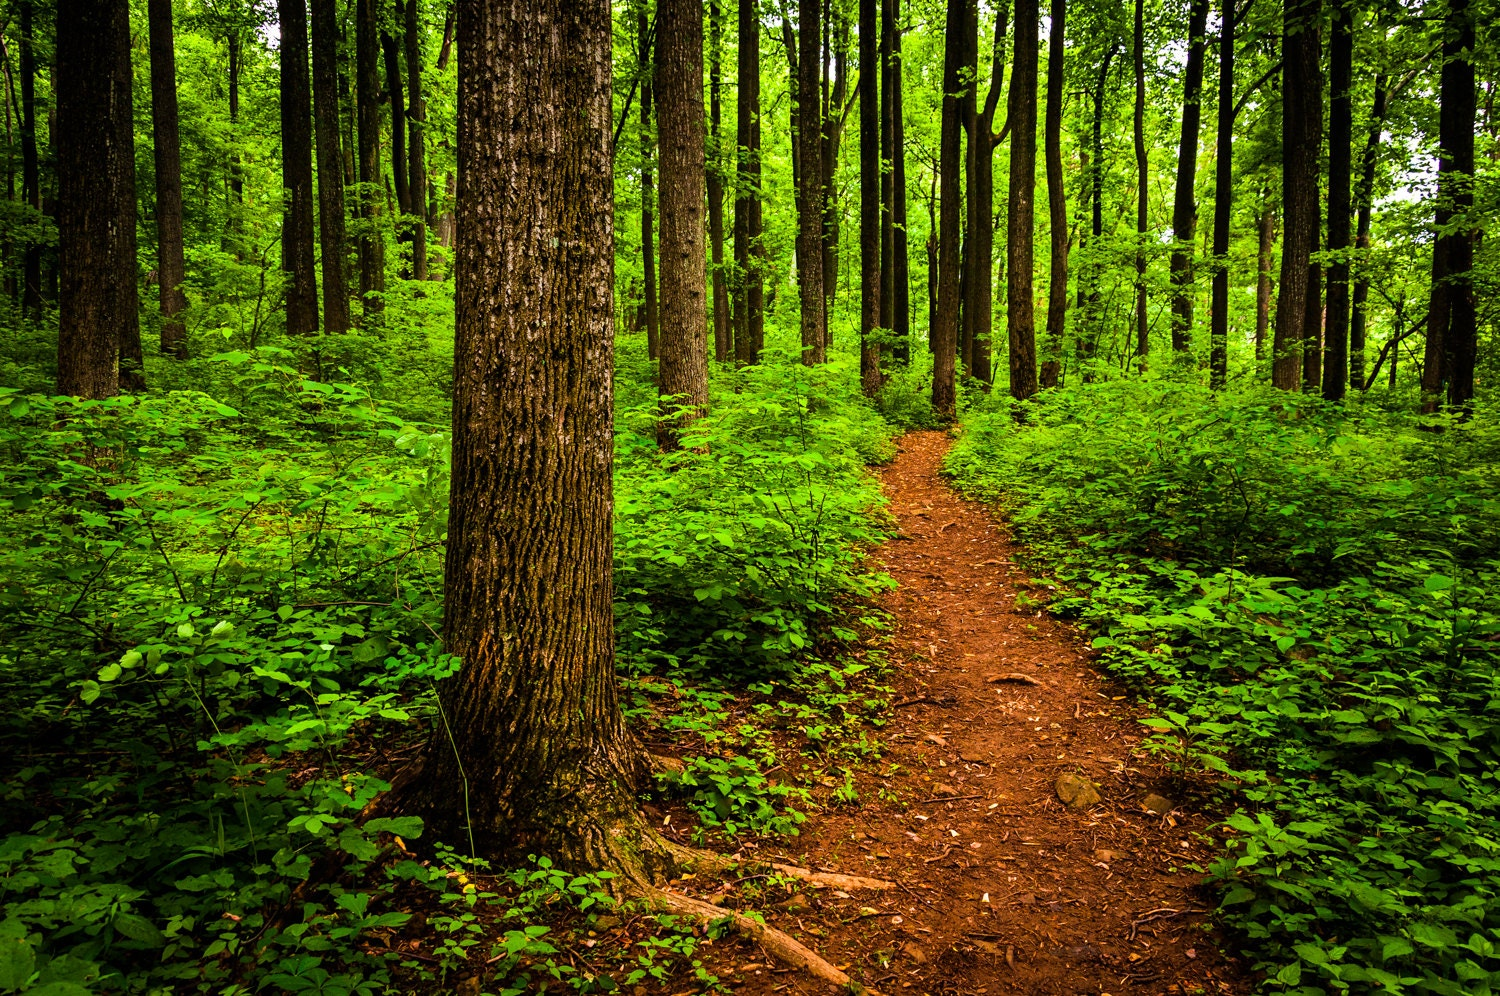 Path through a lush forest in Shenandoah National Park - Nature Photography Fine Art Print or Gallery Wrap Canvas Home Decor - AppalachianViews